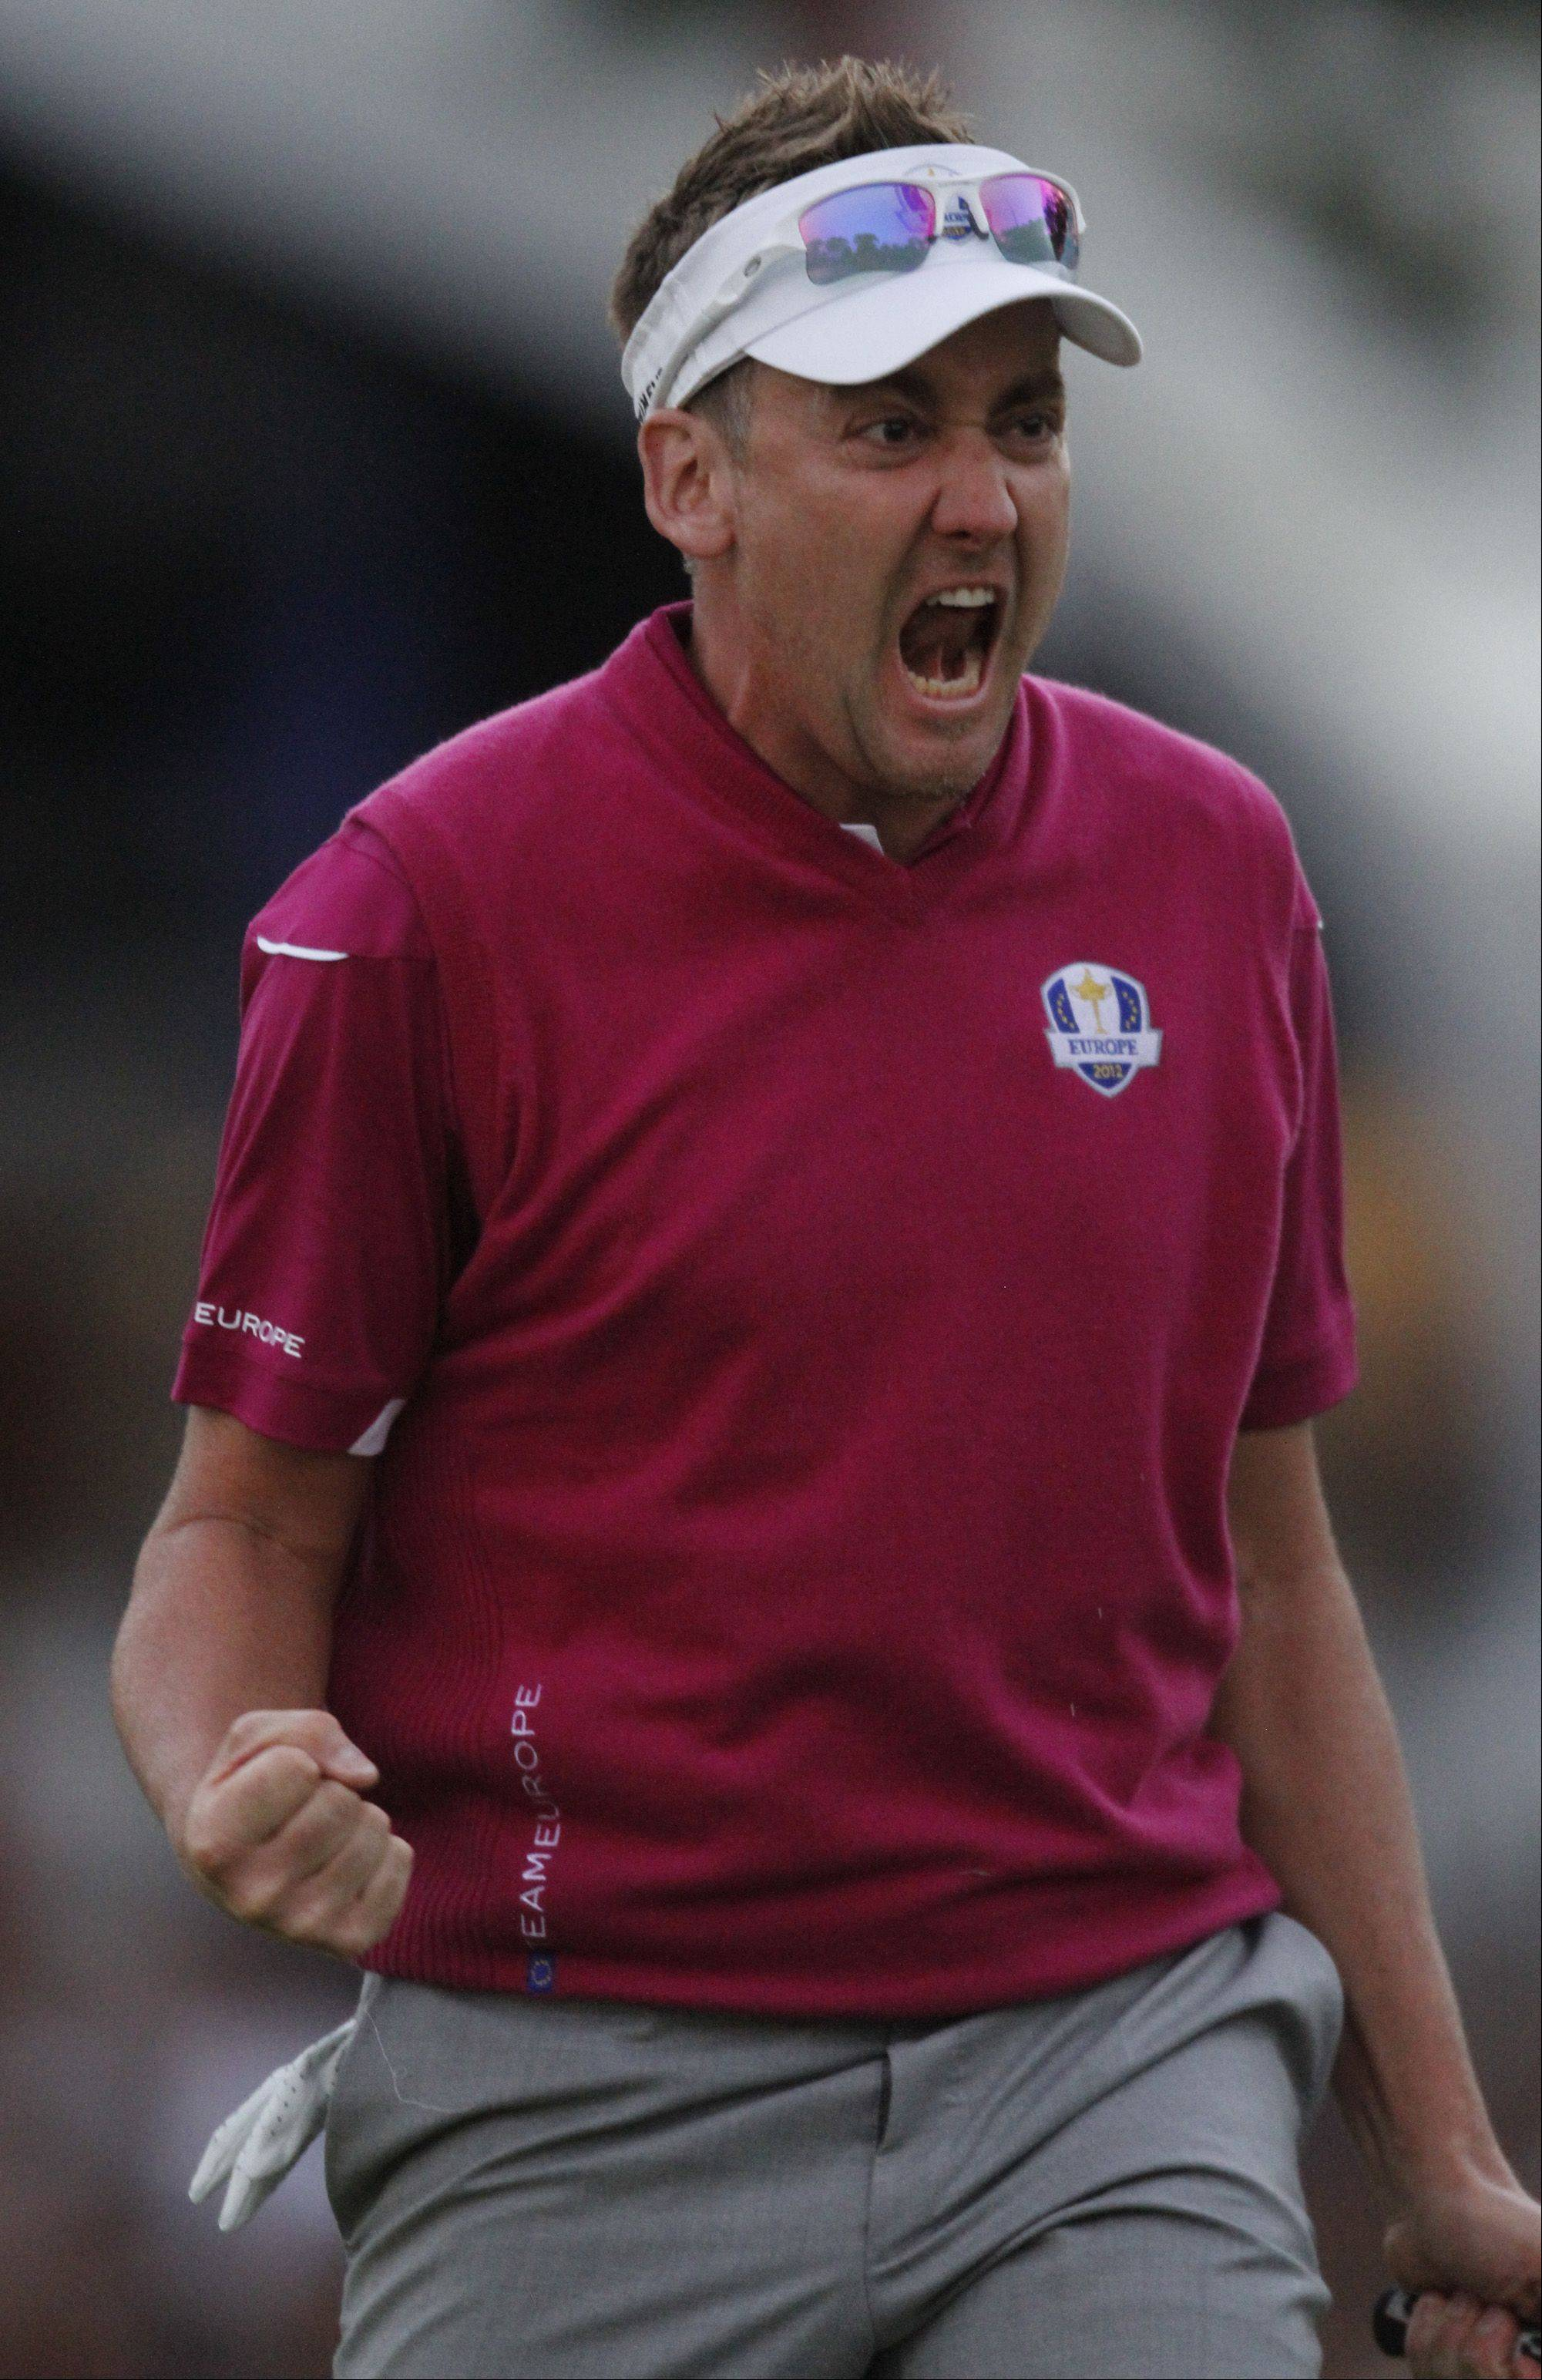 Team Europe's Ian Poulter is pumped after sinking a putt to finish 1 up on Team USA at the 18th Saturday in the 39th Ryder Cup. Poulter is 3-0-0 for Europe at Medinah.